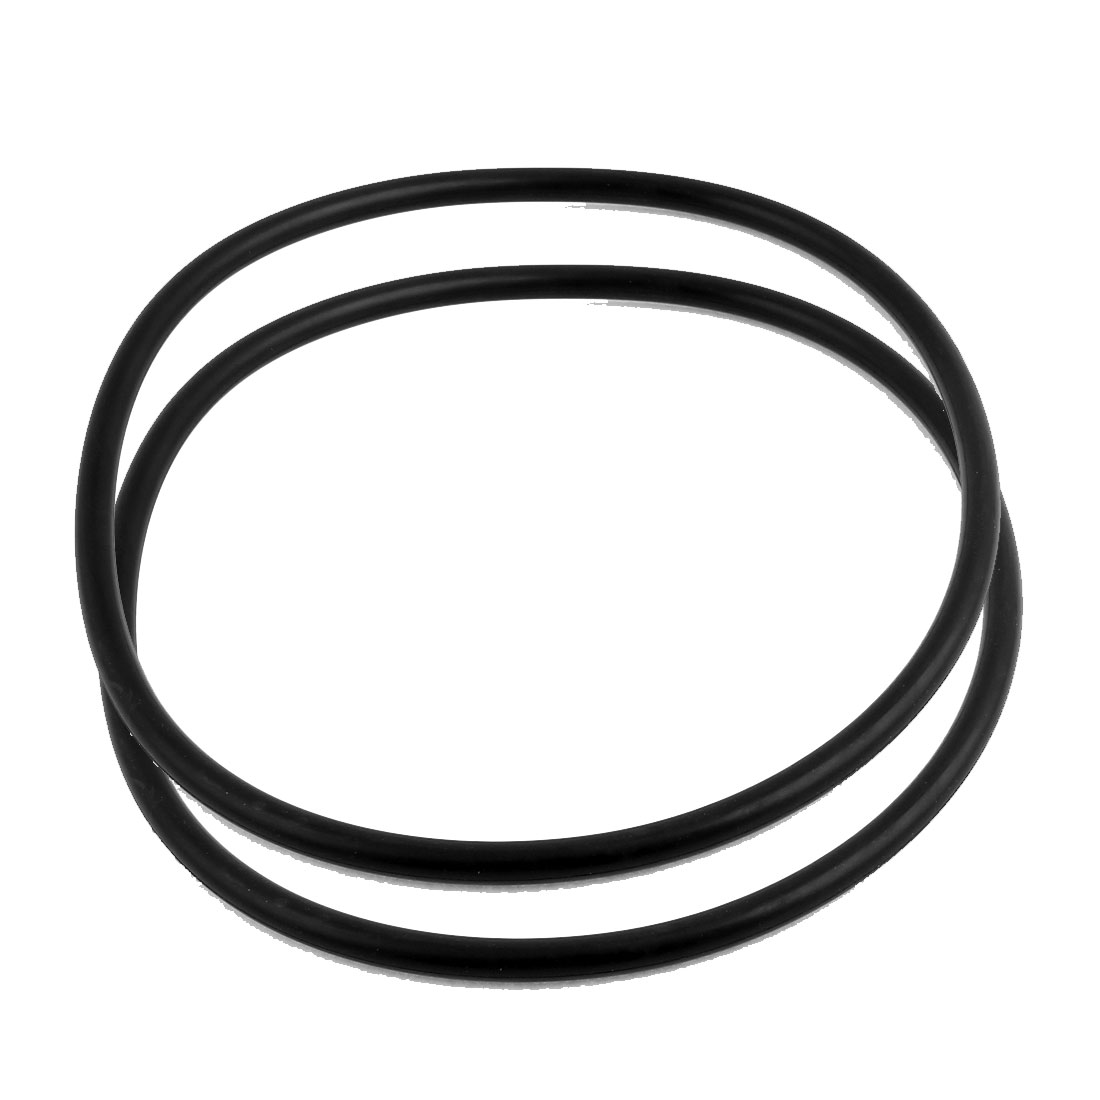 2Pcs Black Universal O-Ring 215mm x 8.6mm BUNA-N Material Oil Seal Washers Grommets